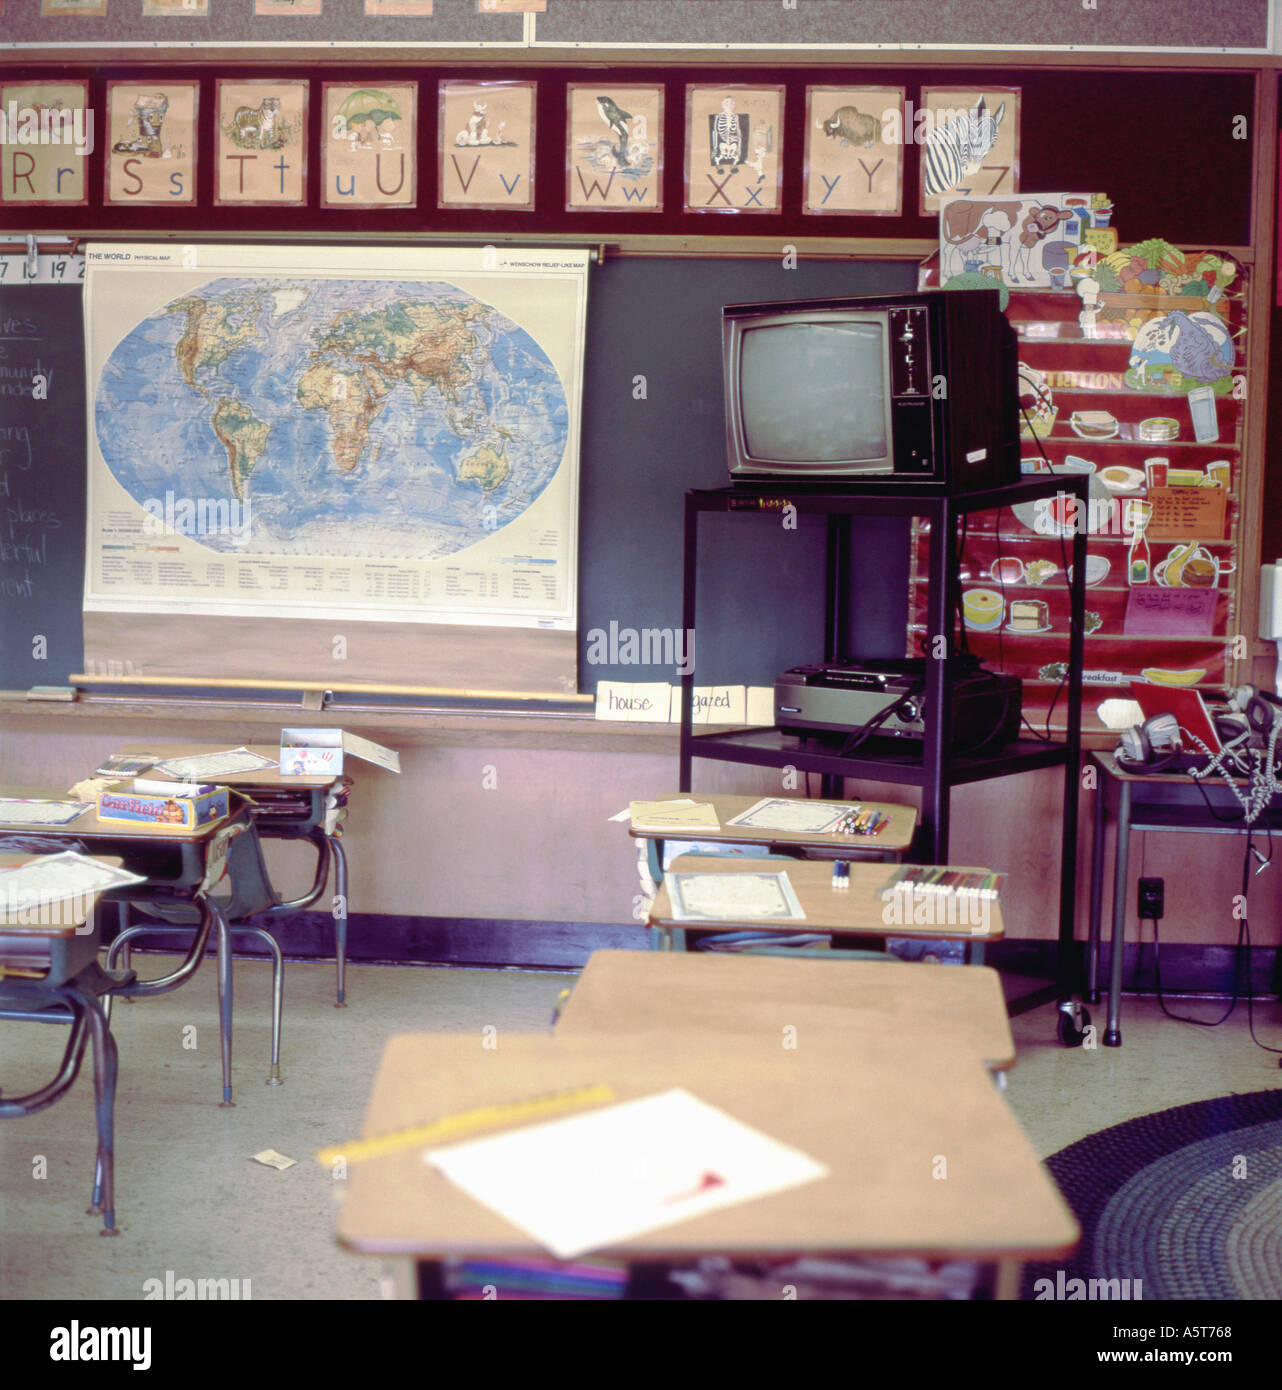 Map Of Canada For Elementary Students.Elementary Classroom Interior With Map On Blackboard Without